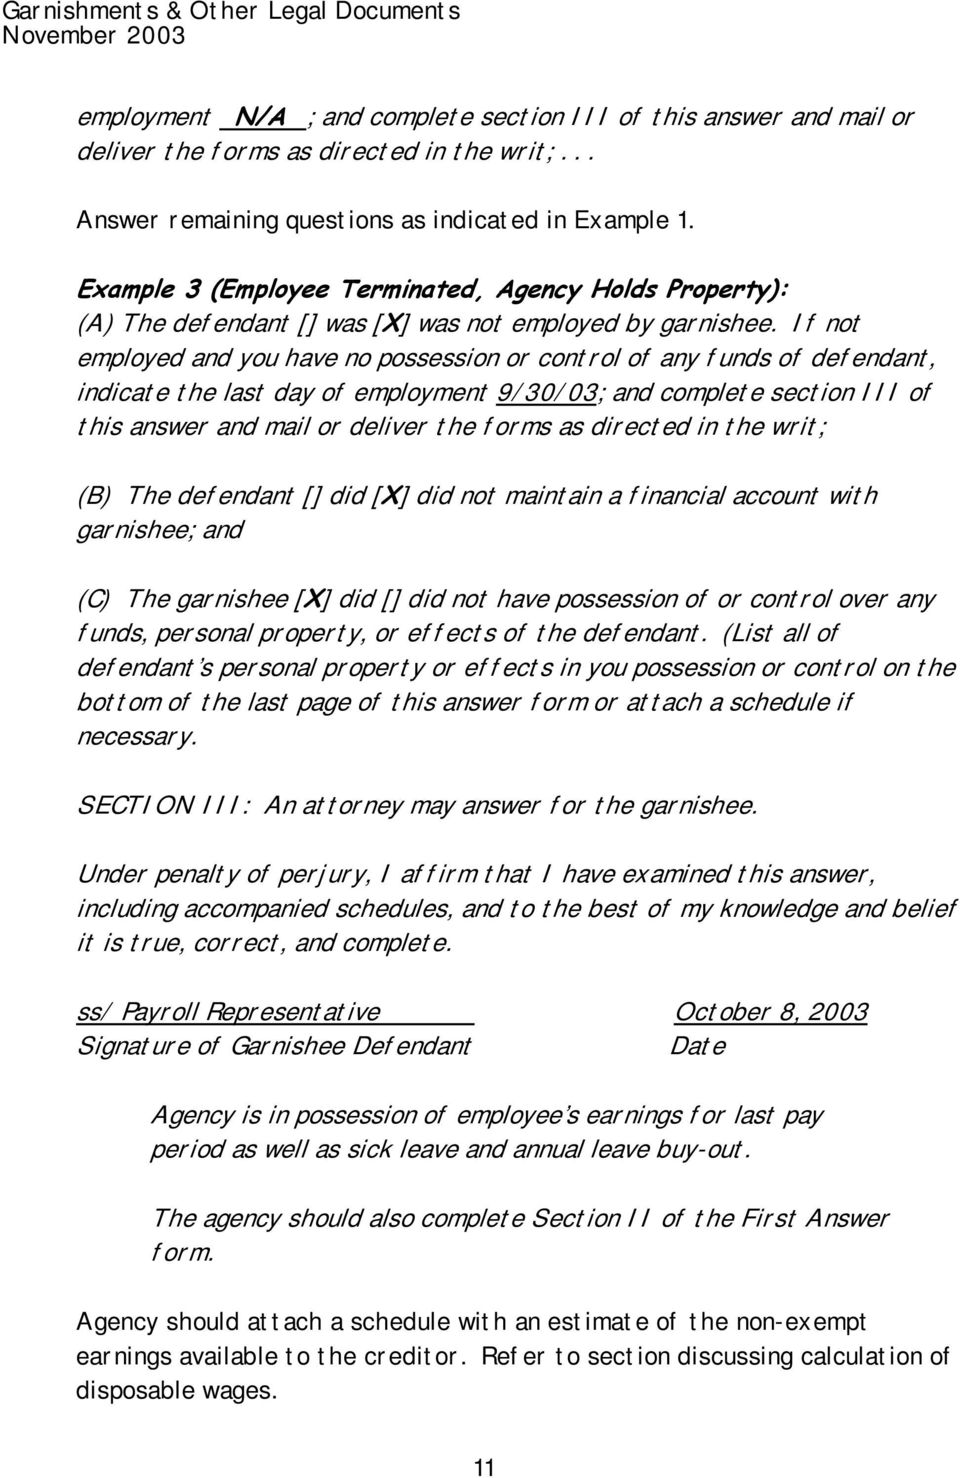 If not employed and you have no possession or control of any funds of defendant, indicate the last day of employment 9/30/03; and complete section III of this answer and mail or deliver the forms as